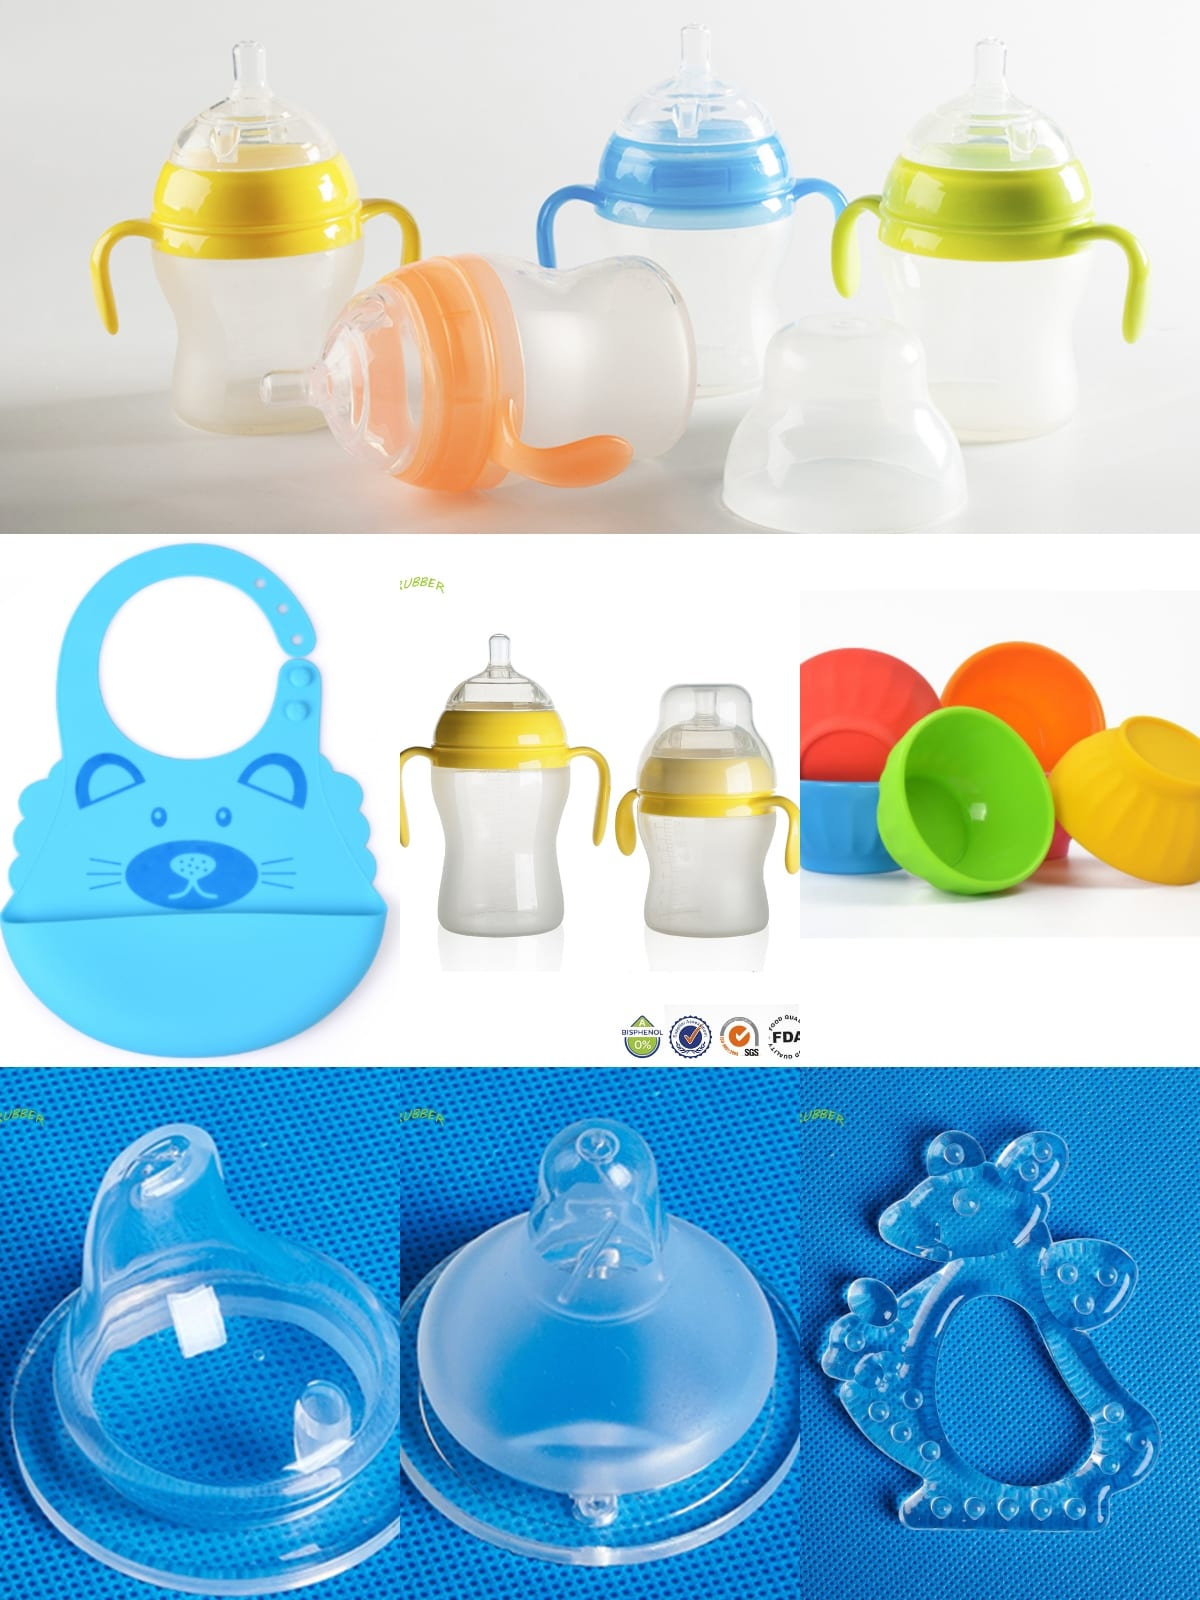 Silicone parts for baby products